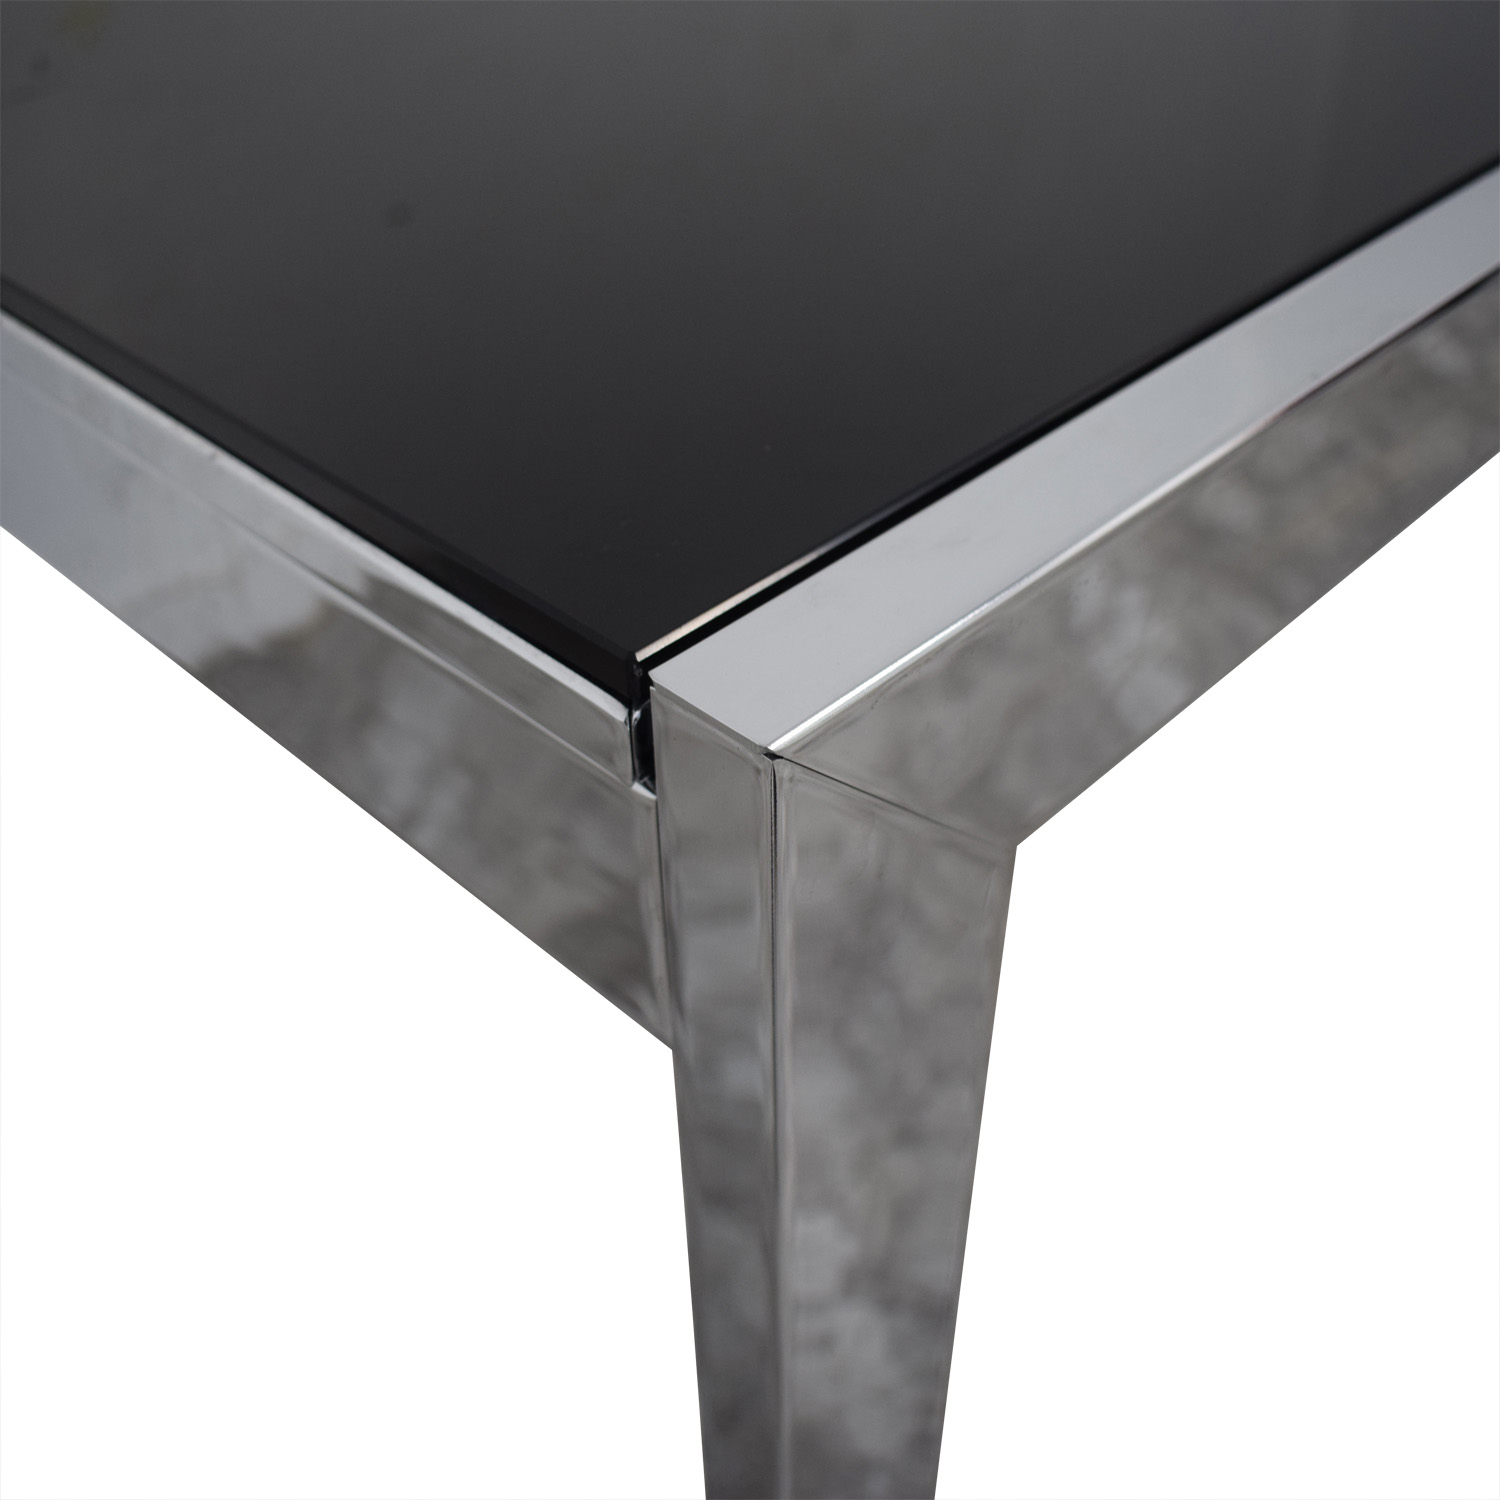 Jensen-Lewis Black Glass Extendable Dining Table sale